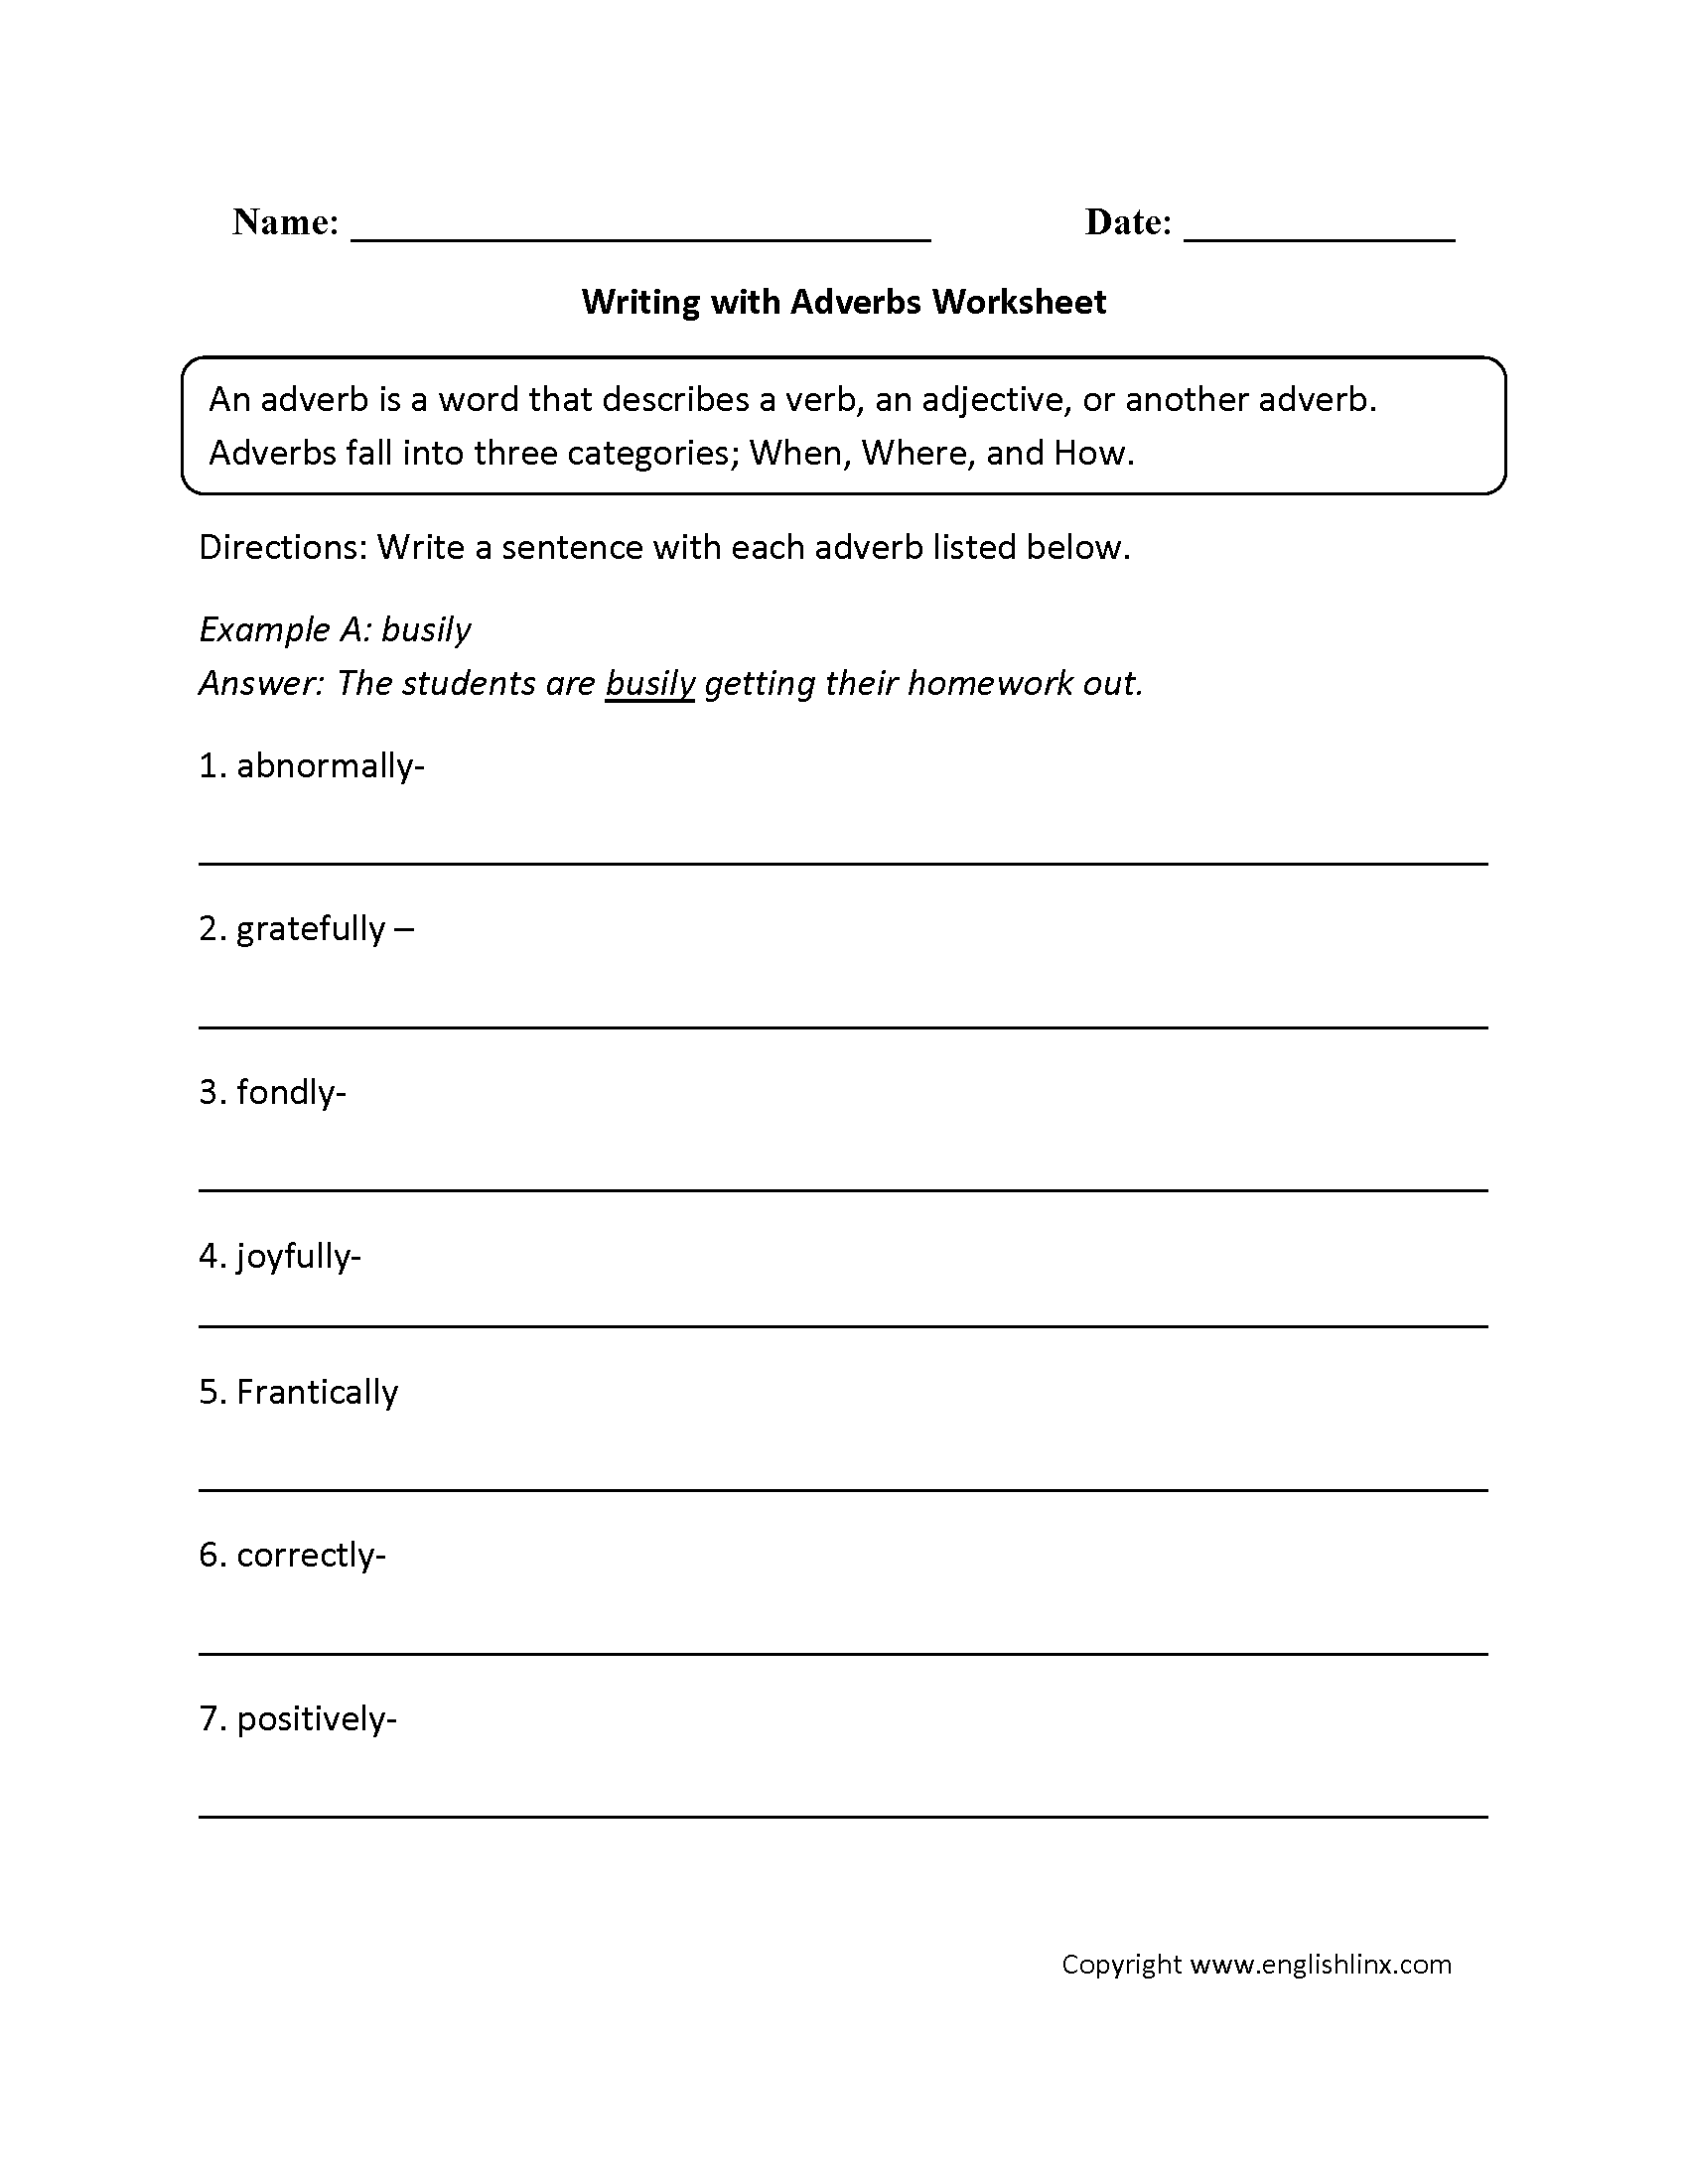 Worksheets Writing Worksheets For 6th Grade regular adverbs worksheets writing with worksheet worksheet